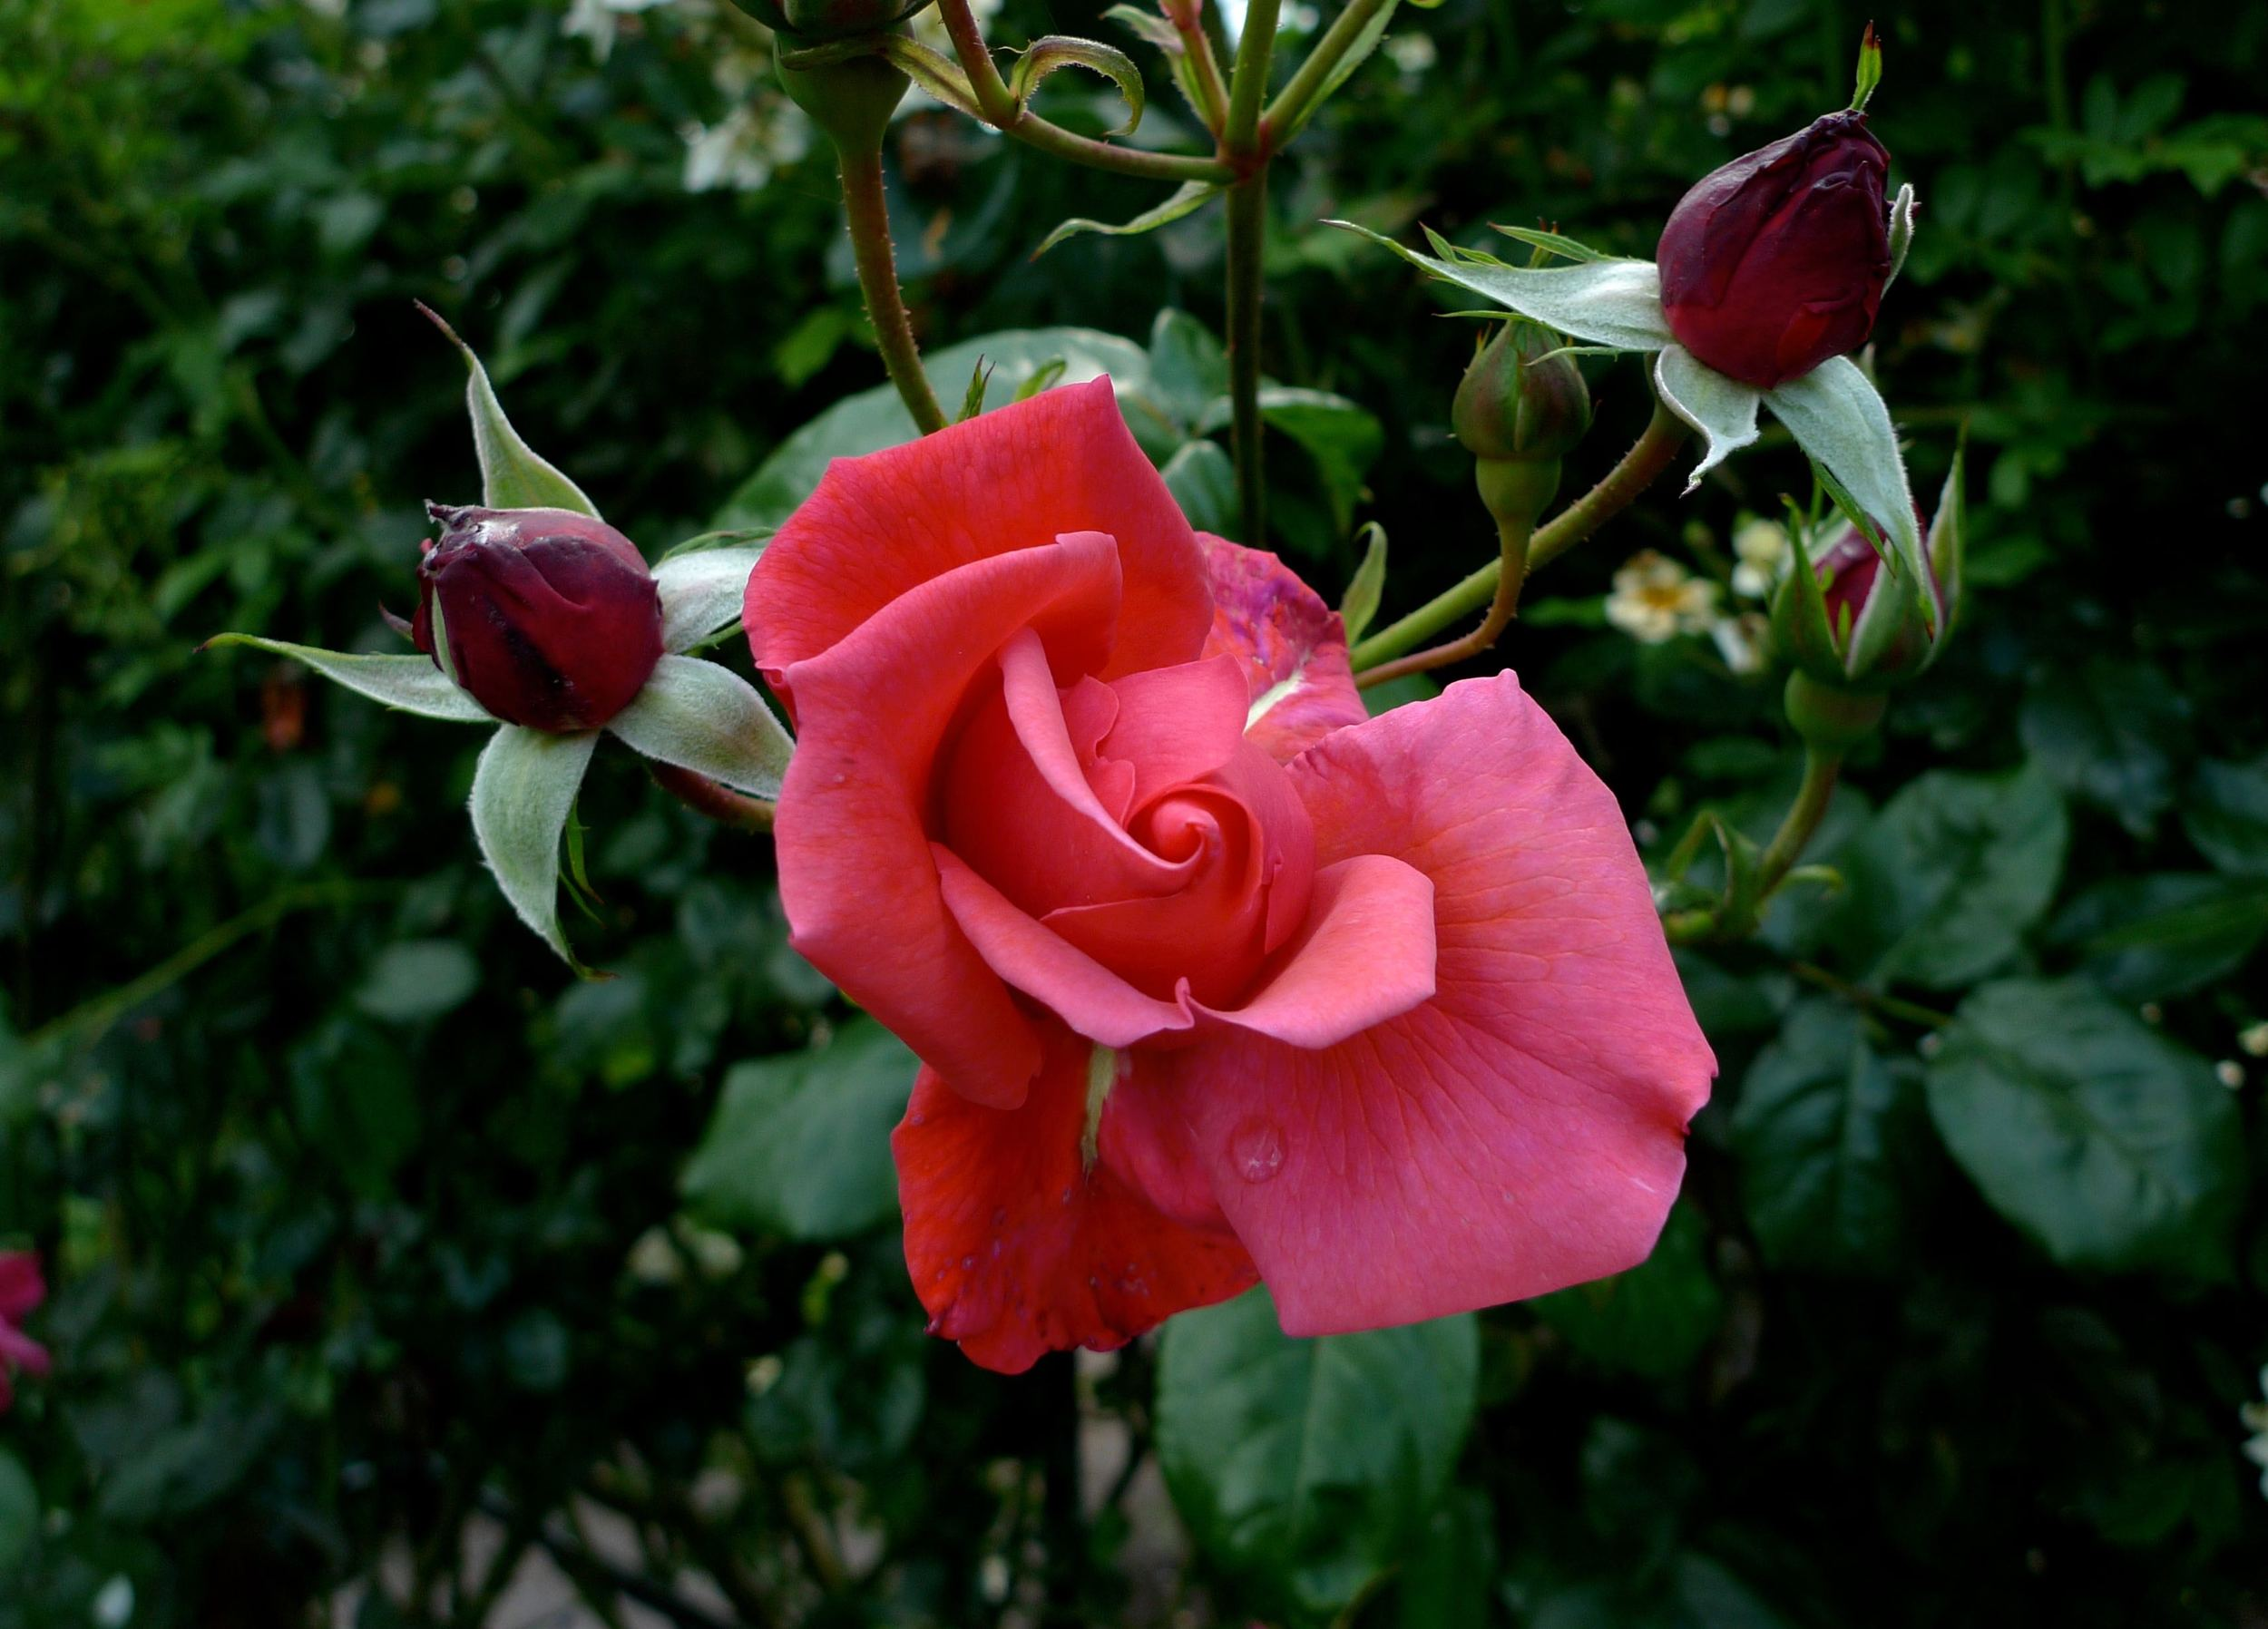 a rose in flower with more buds to follow